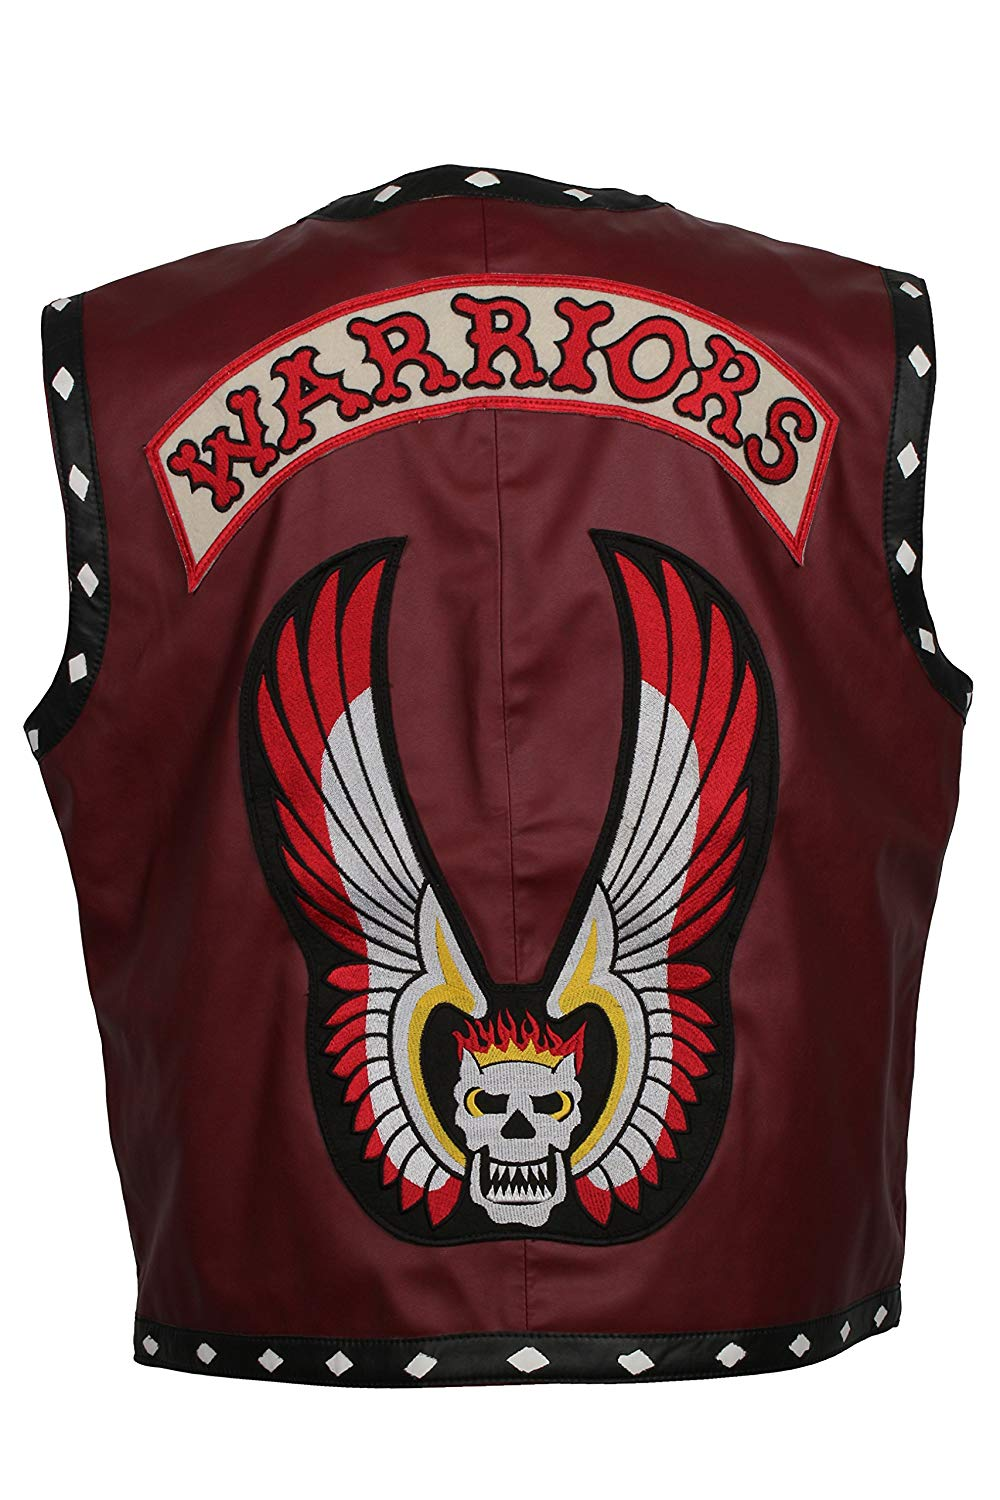 Herts Leather Warrior Style Real Leather HQ Vest In Maroon With White Diamonds Pattern